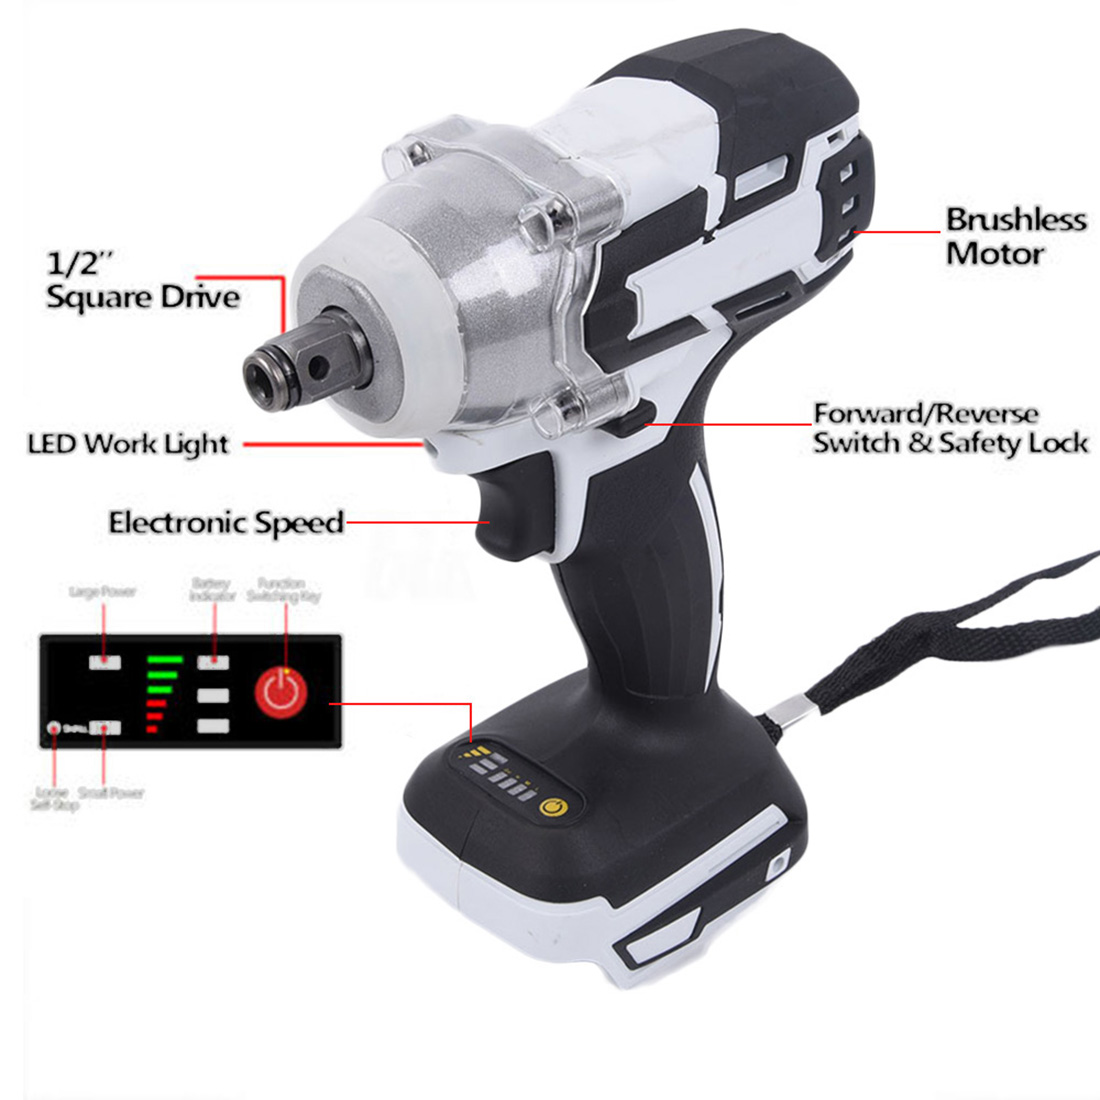 18V 520Nm Cordless Brushless Impact Electric Wrench Body No Batteries For Makita Battery For Construction Site Shelves